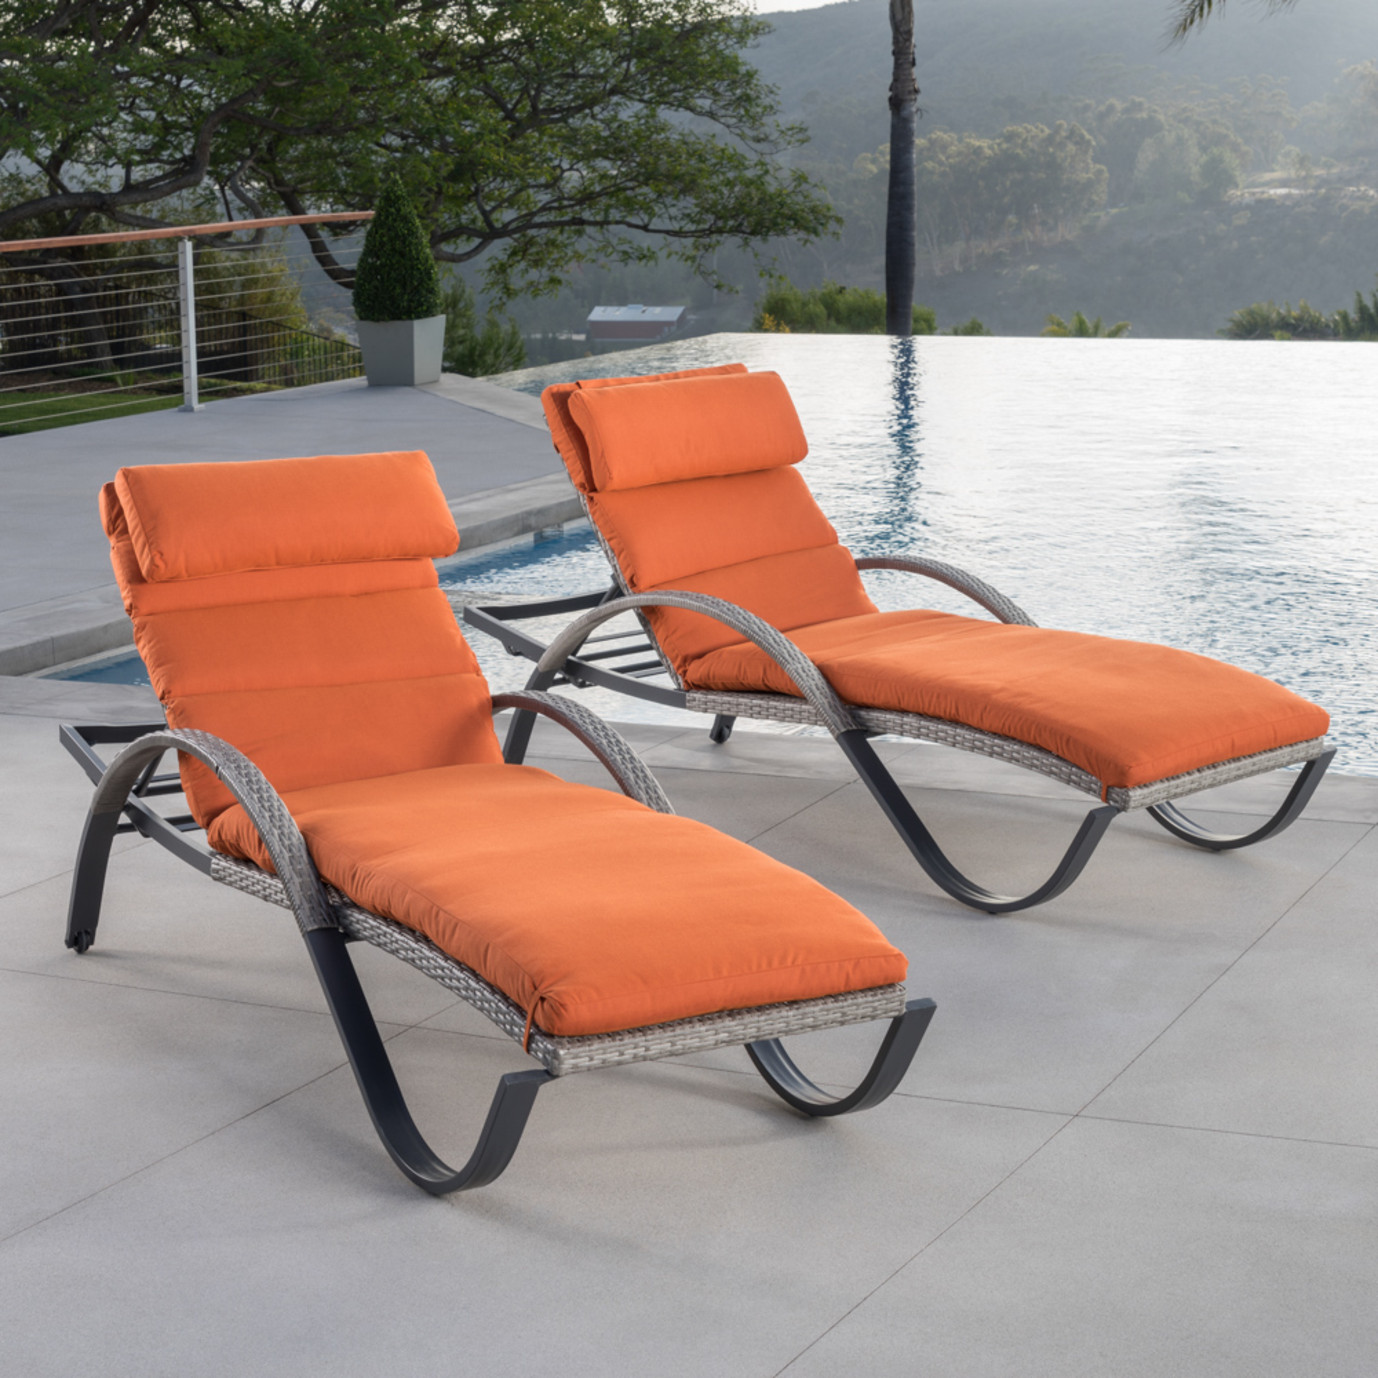 Cannes™ Chaise Lounges with Cushions - Tikka Orange